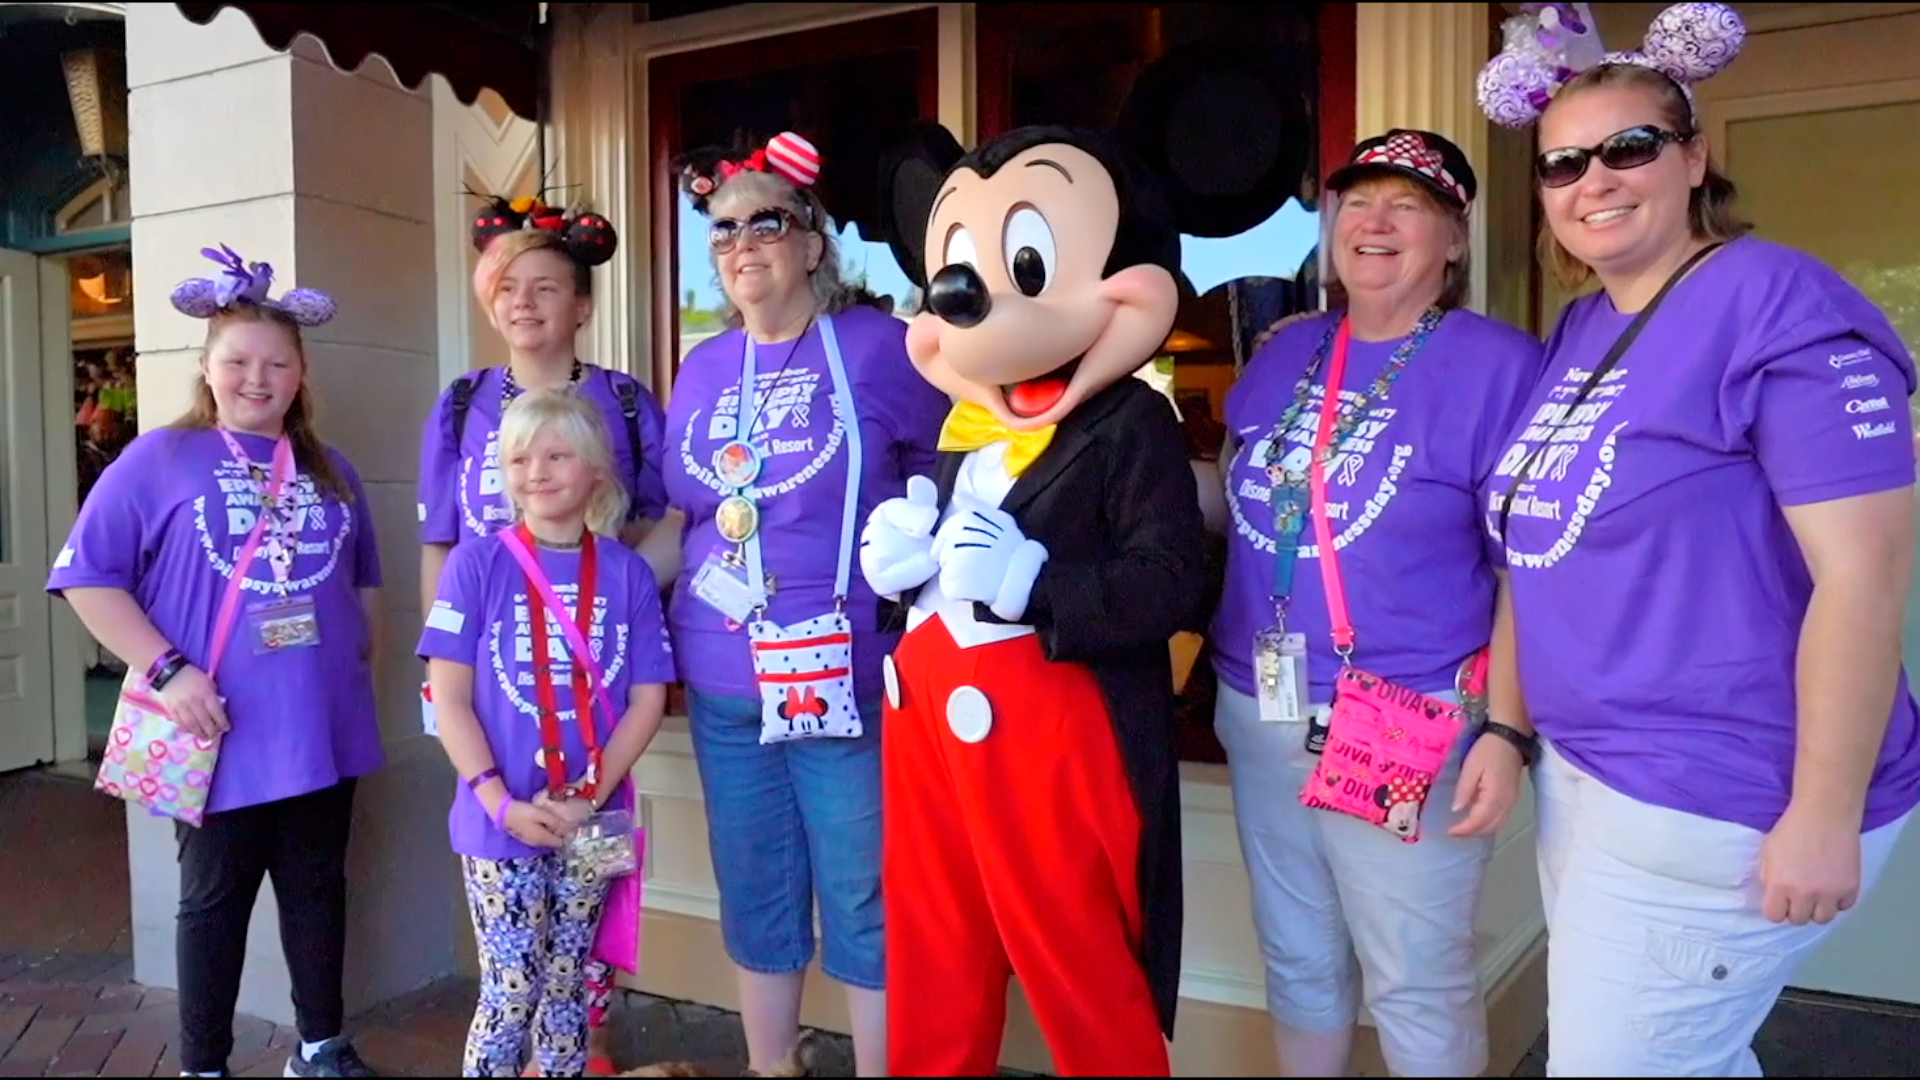 Epilepsy Awareness Day: Disneyland